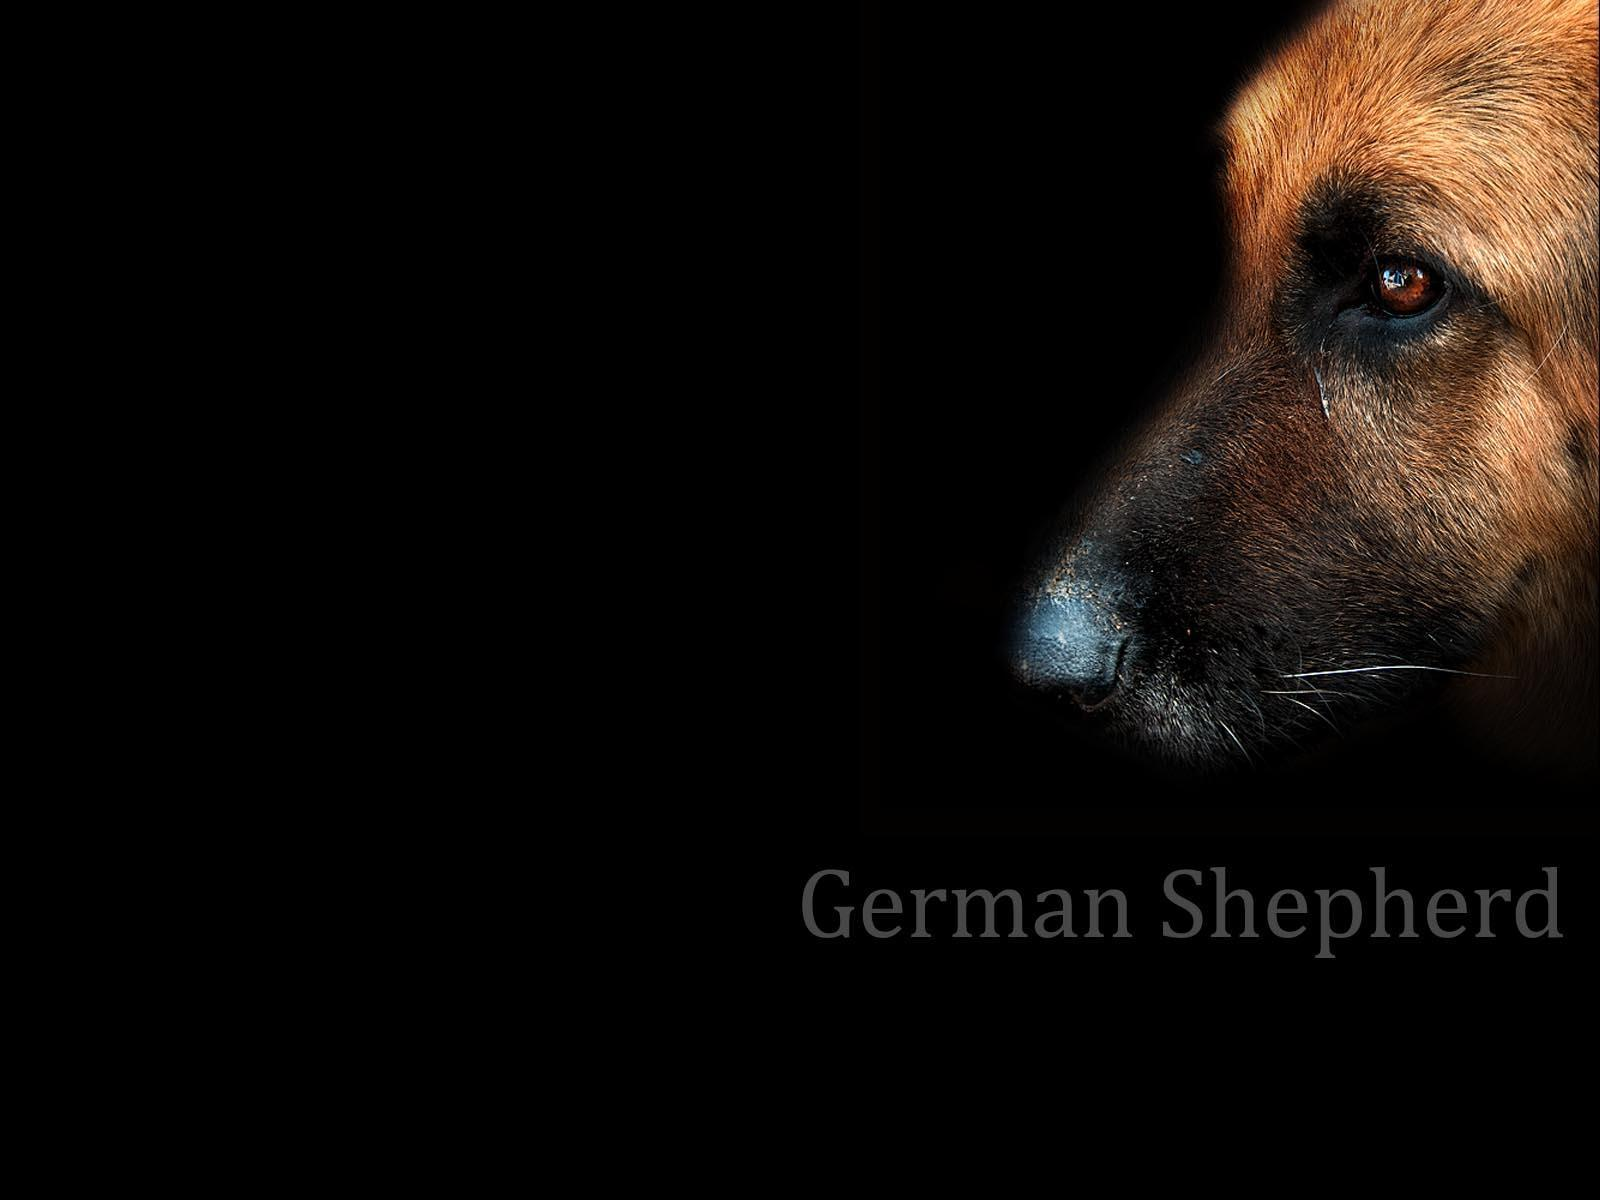 German Shepherd Dog Wallpapers - Wallpaper Cave